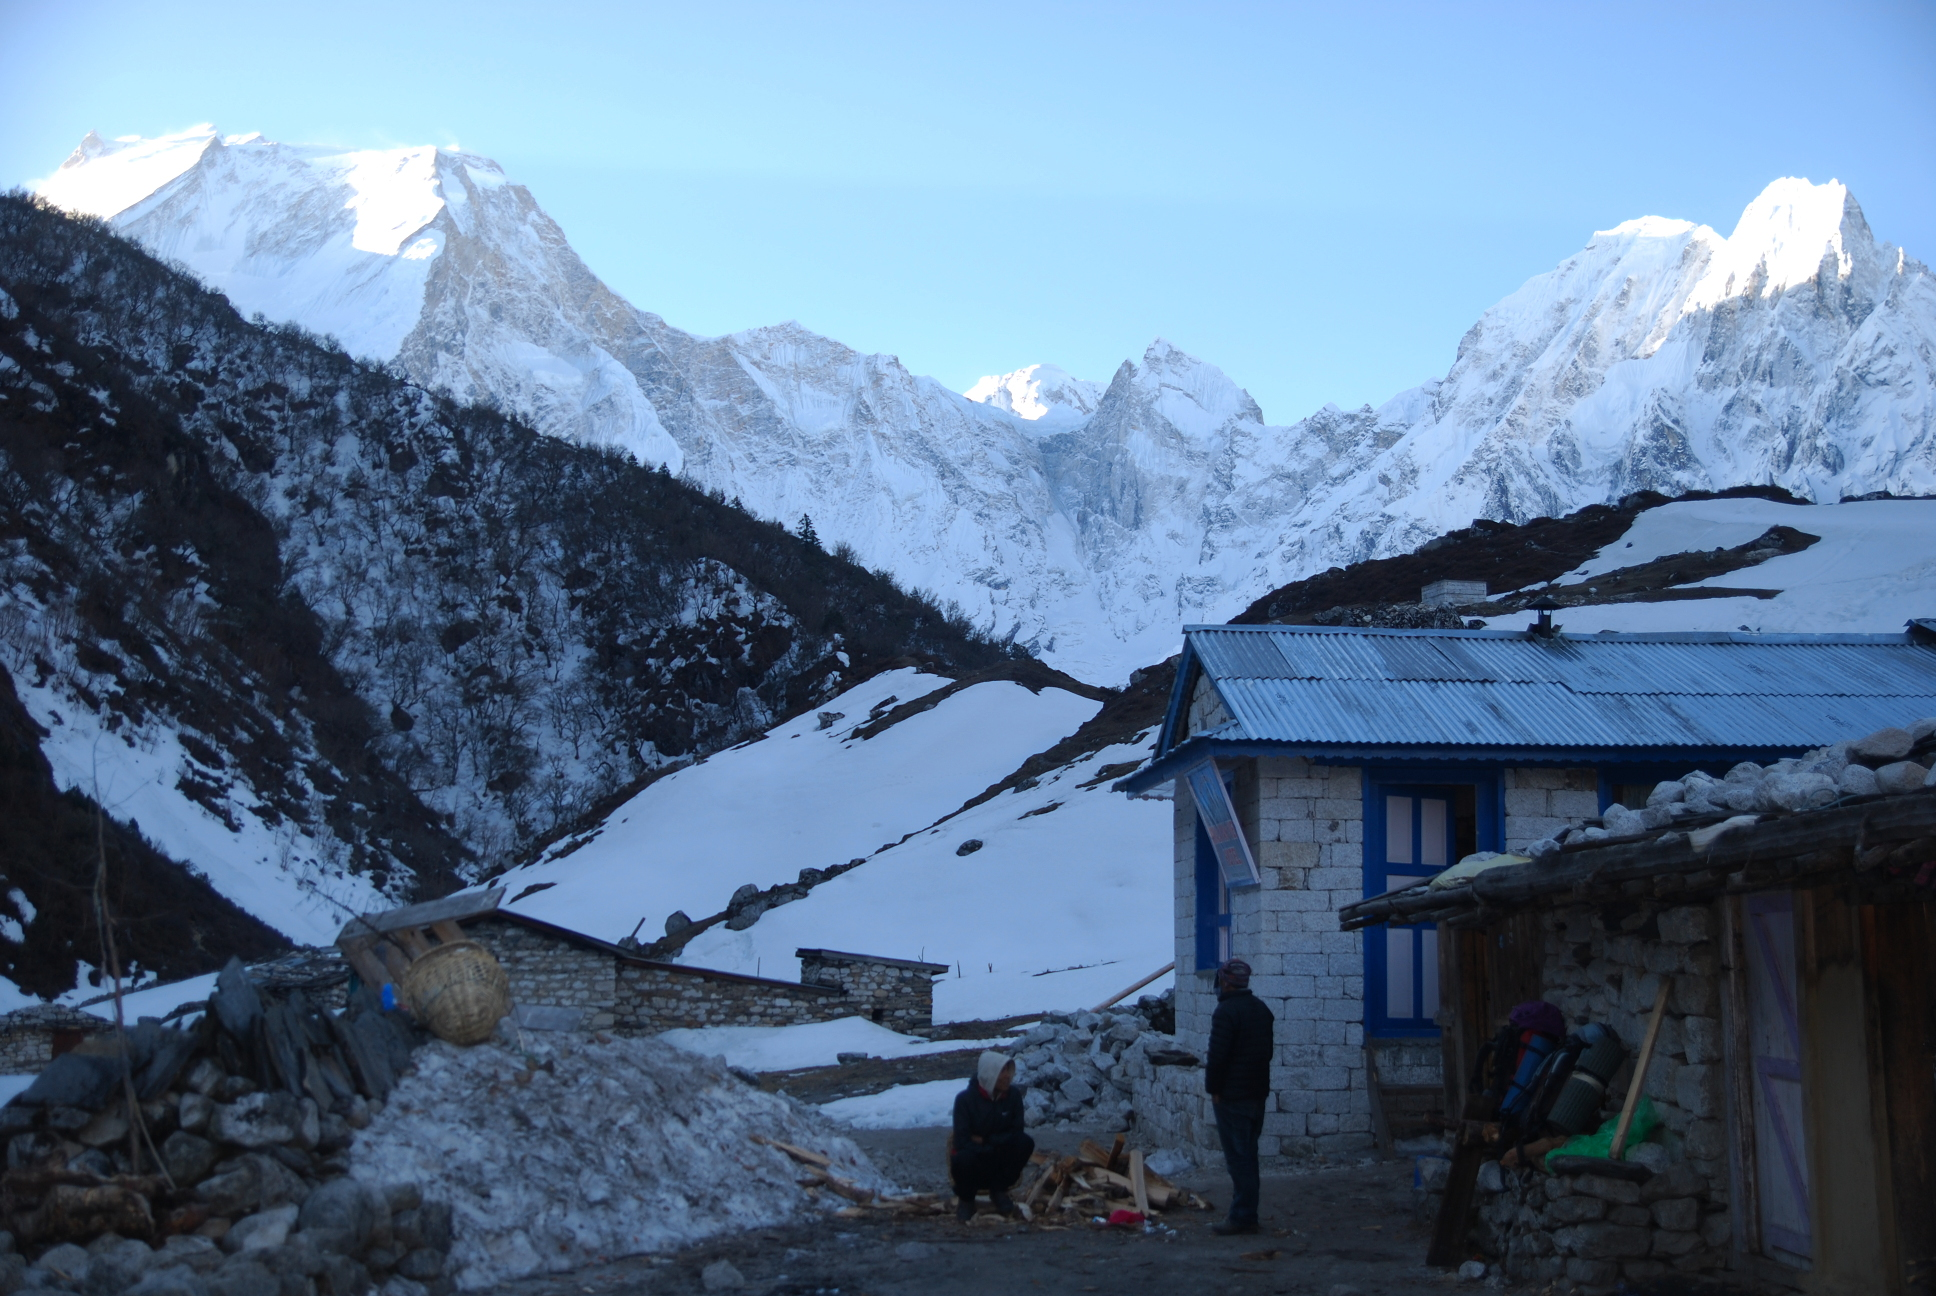 Manaslu_EarlyMorning3_AANepal.JPG